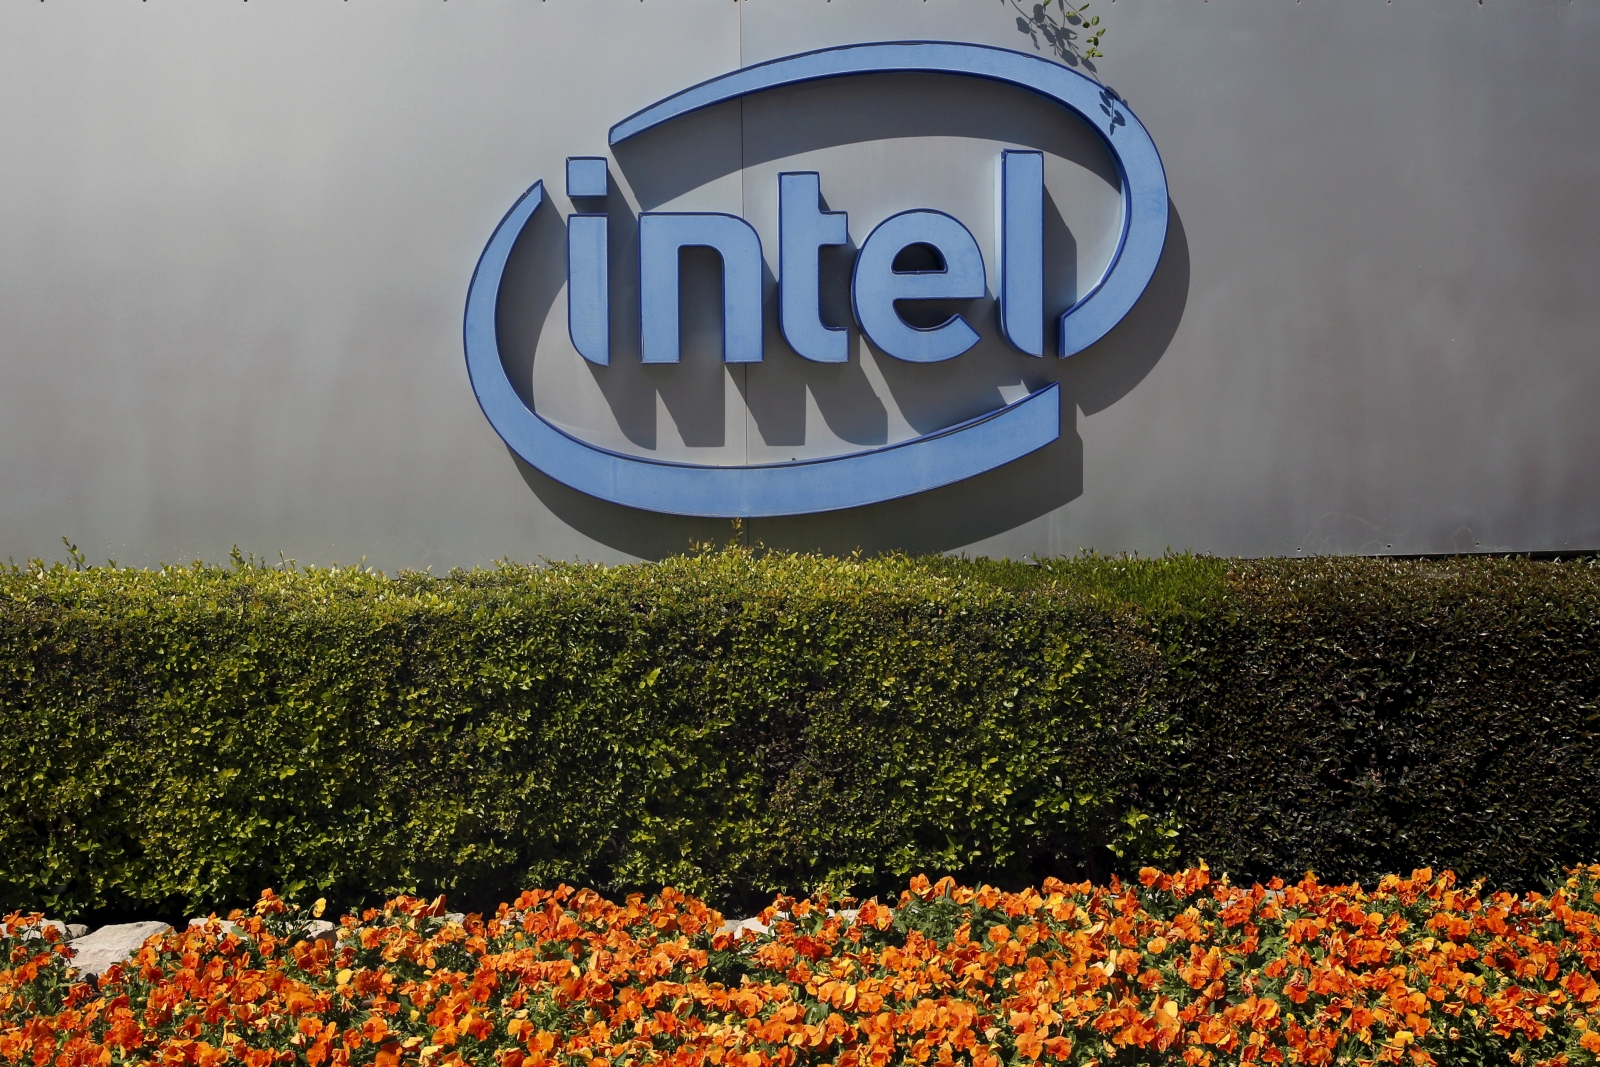 Intel Buys Mobileye, Chip Maker Granting Vision to Cars, for $15.3 Billion